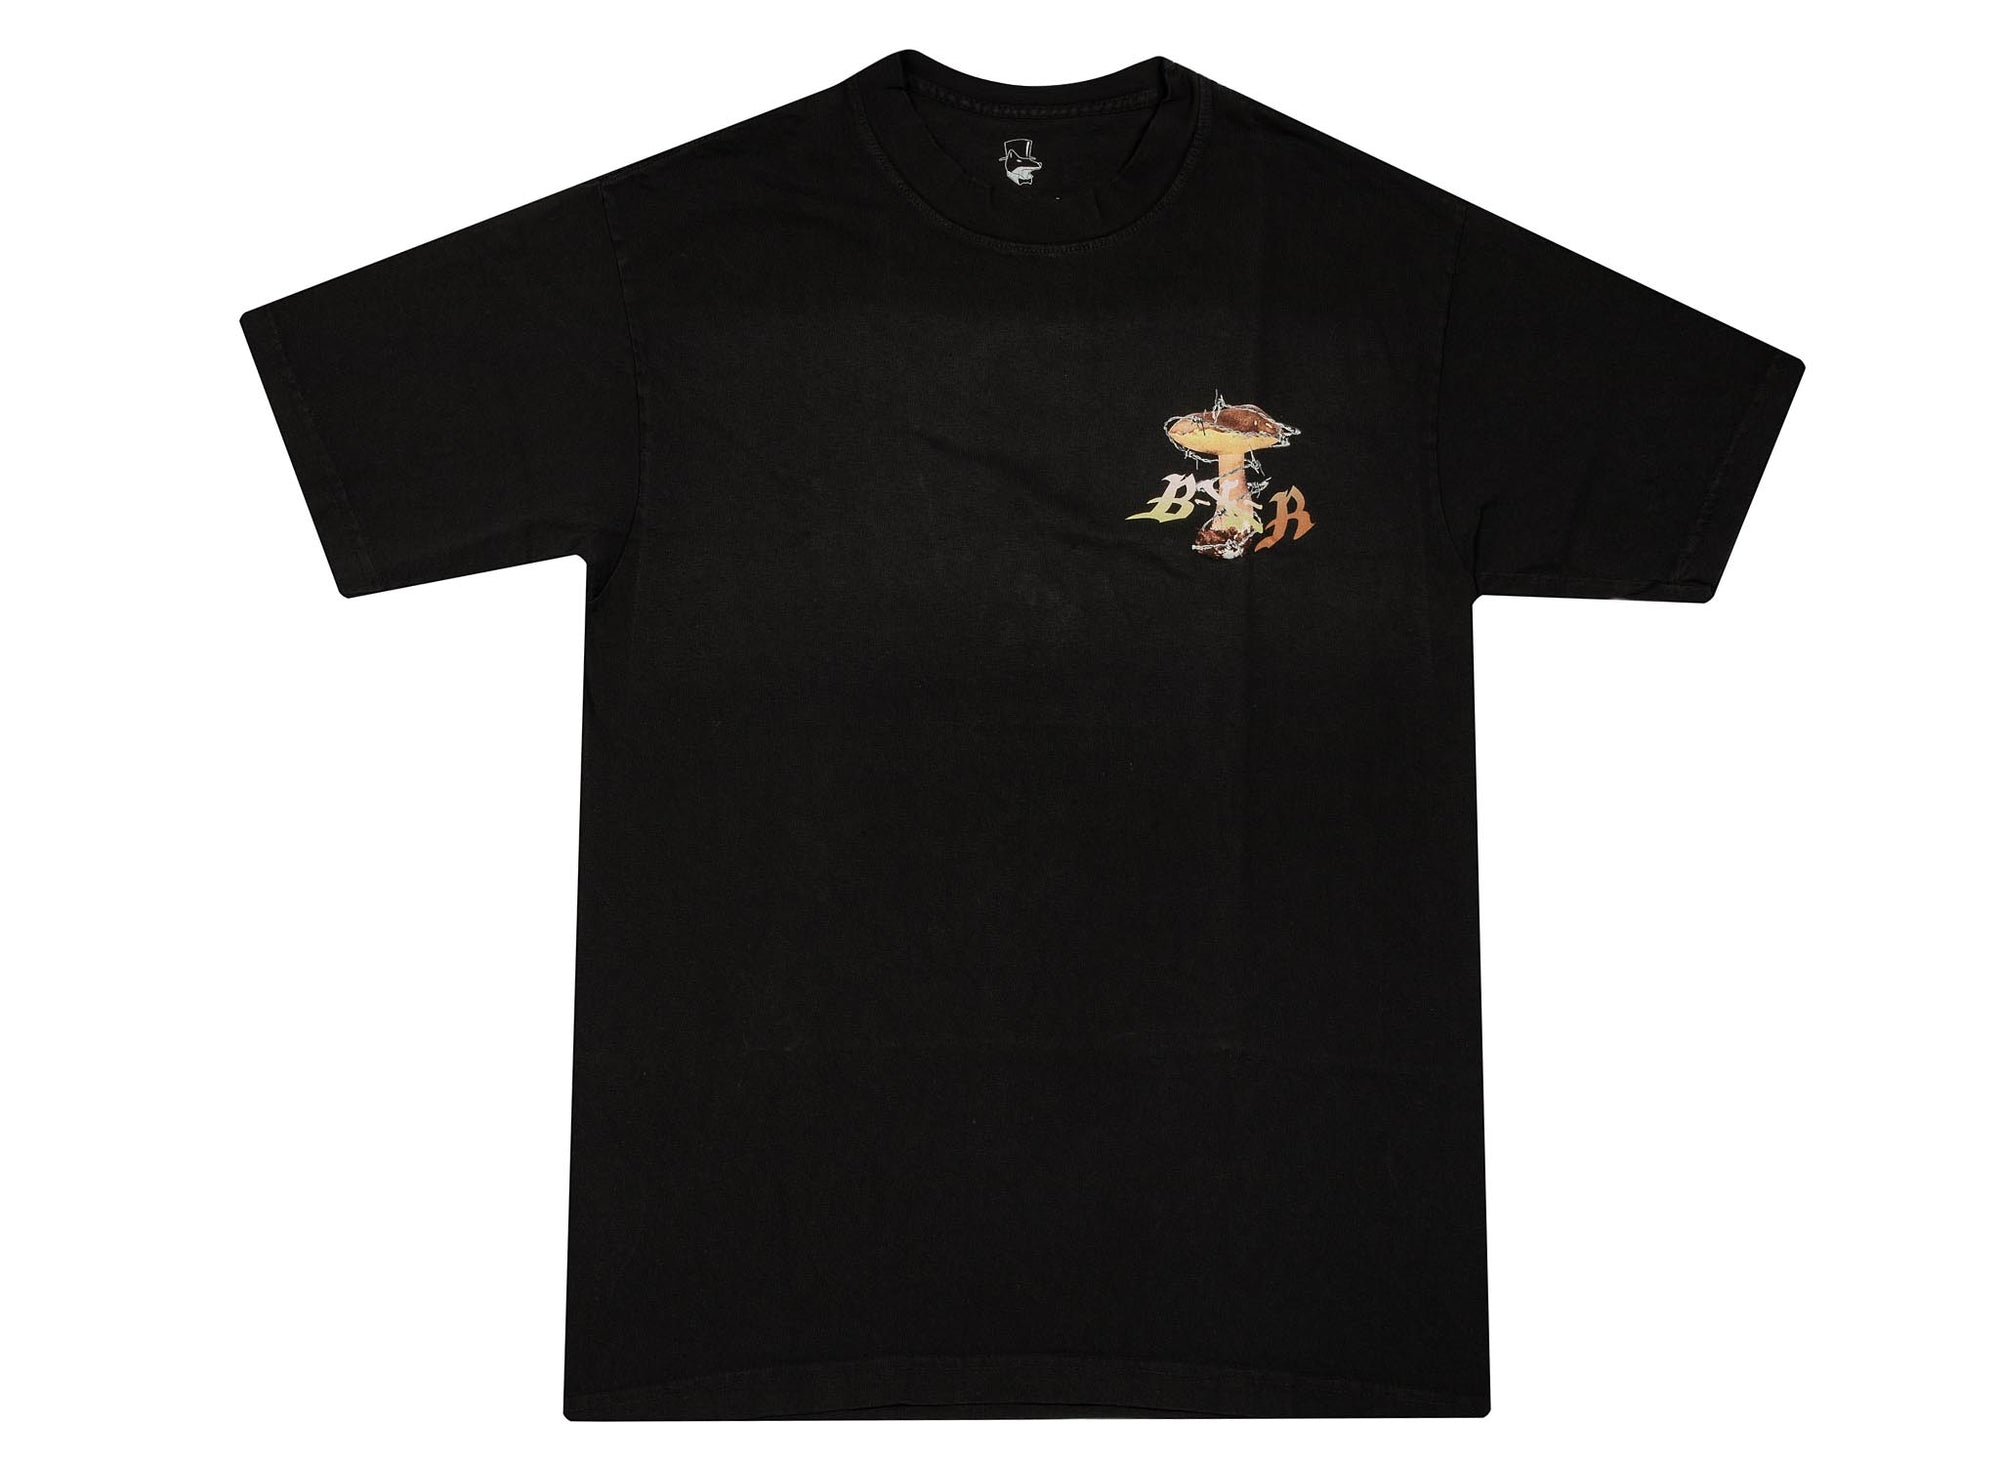 BORN x RAISED AFTER SCHOOL SPECIAL S/S TEE Vintage Black